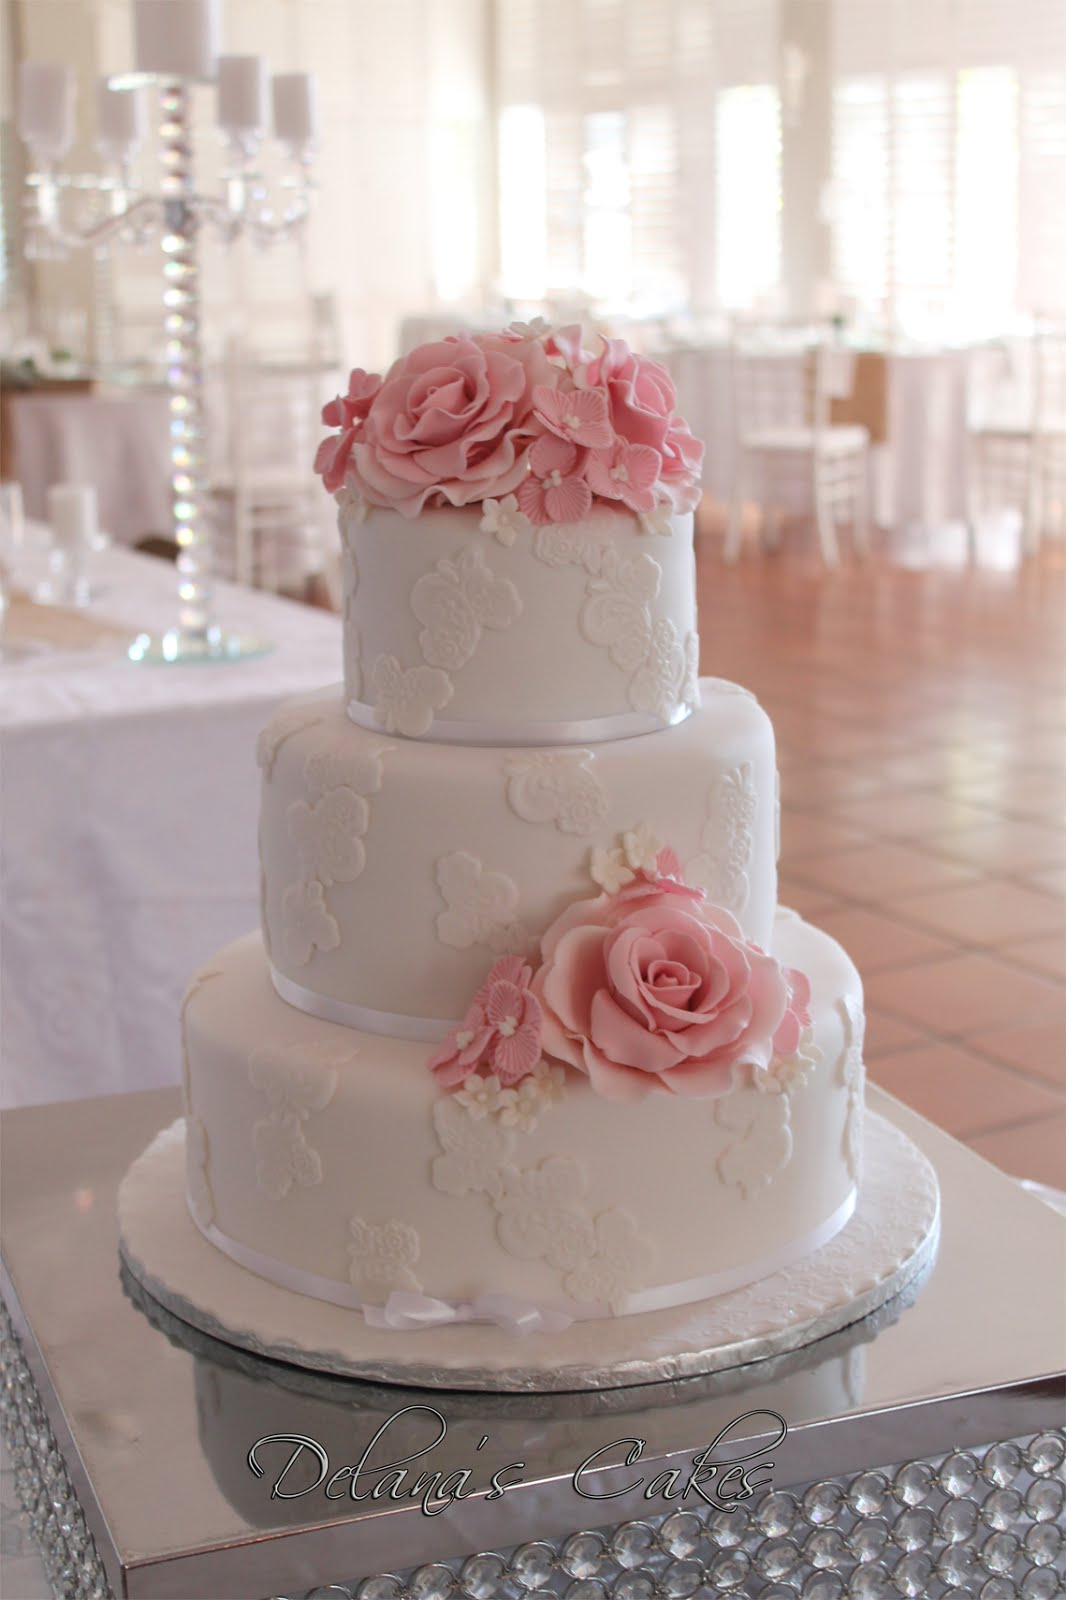 Delanas cakes blush pink and white wedding cake blush pink and white wedding cake mightylinksfo